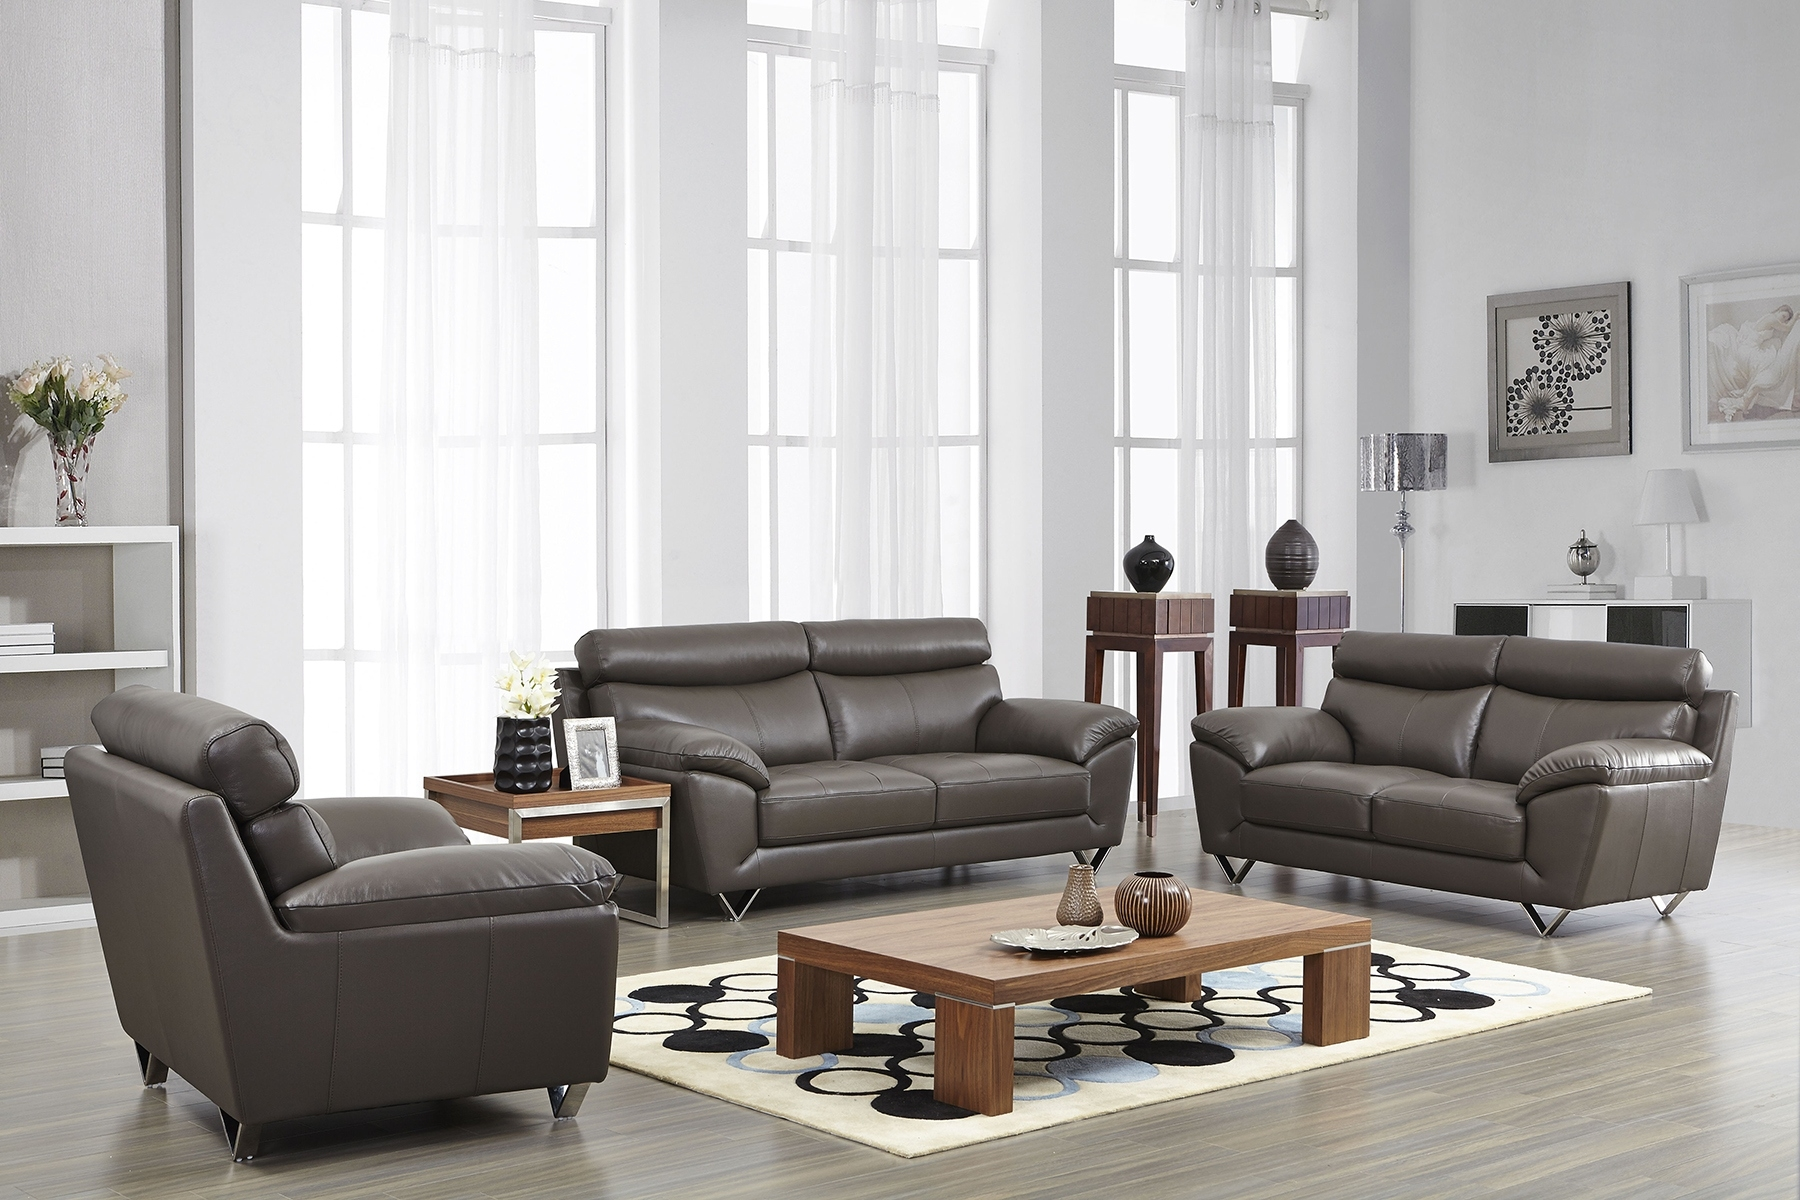 Contemporary Stylish Leather 3Pc Sofa Set With Chrome Legs intended for Leather Sofas For Living Room